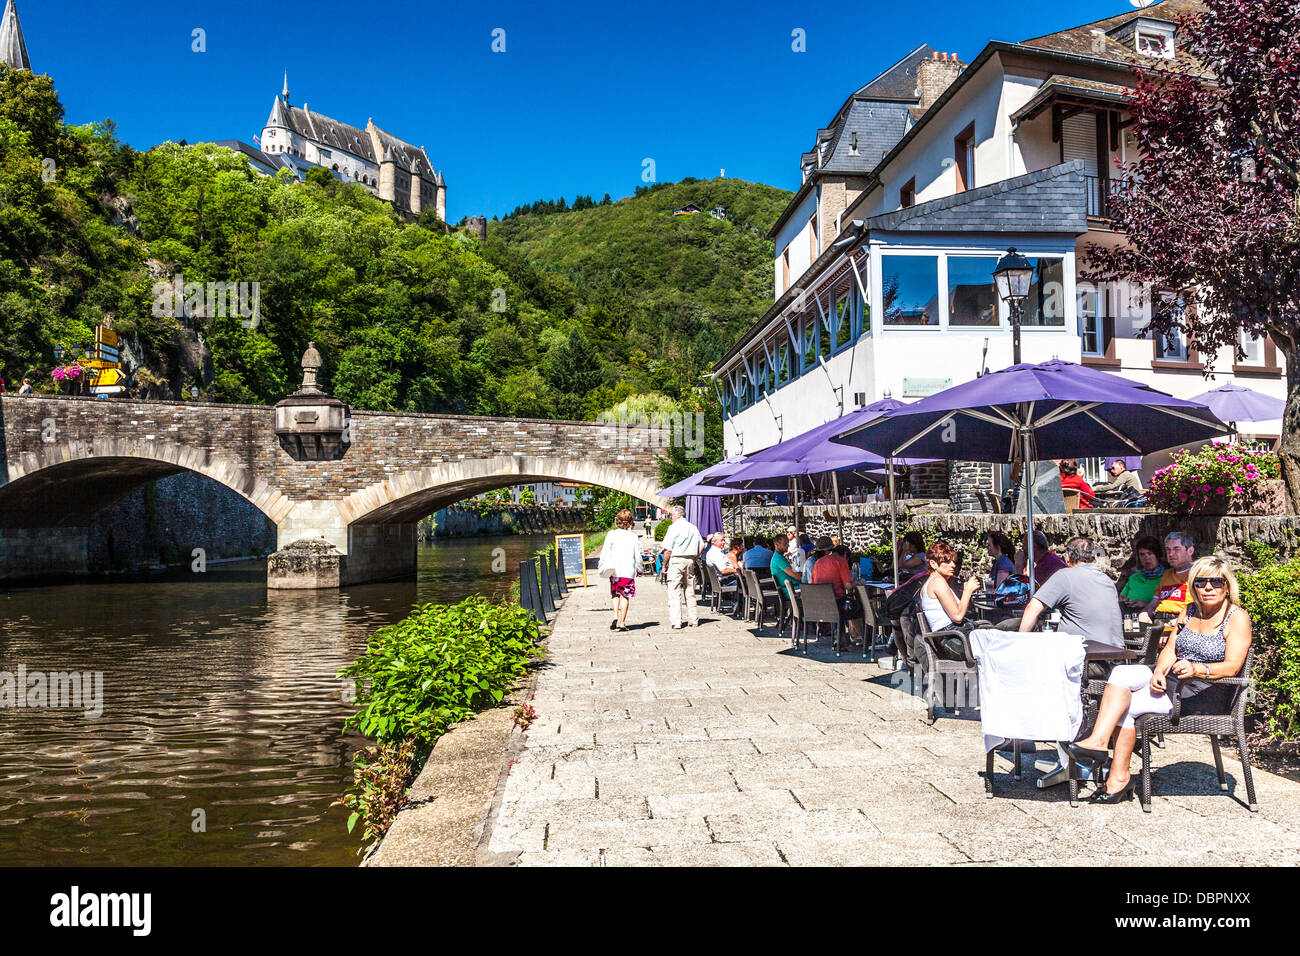 View of the castle at Vianden in Luxembourg, from the river Our below. - Stock Image